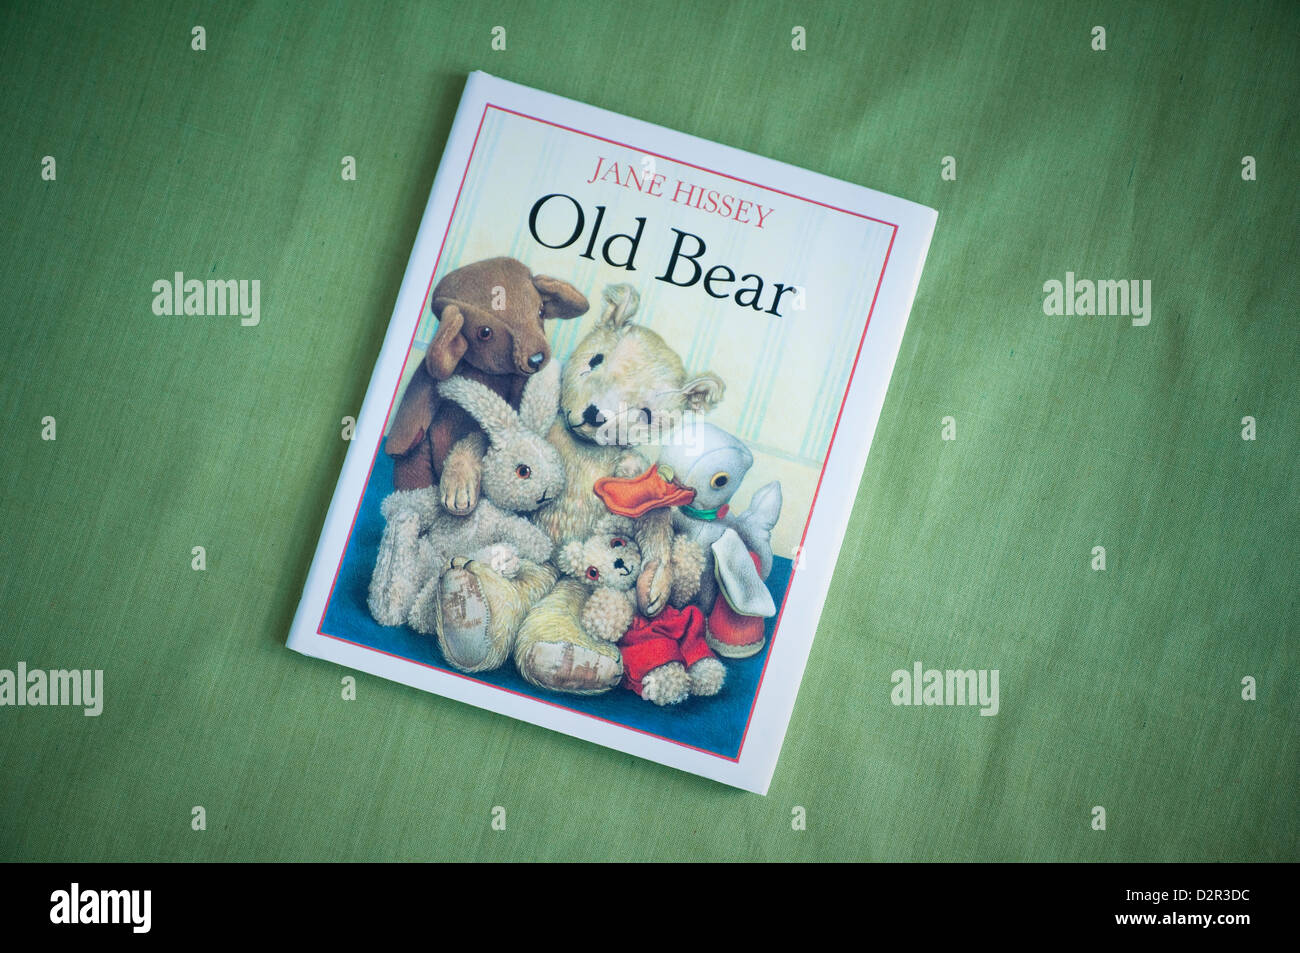 Old Bear by Jane Hissey - Stock Image